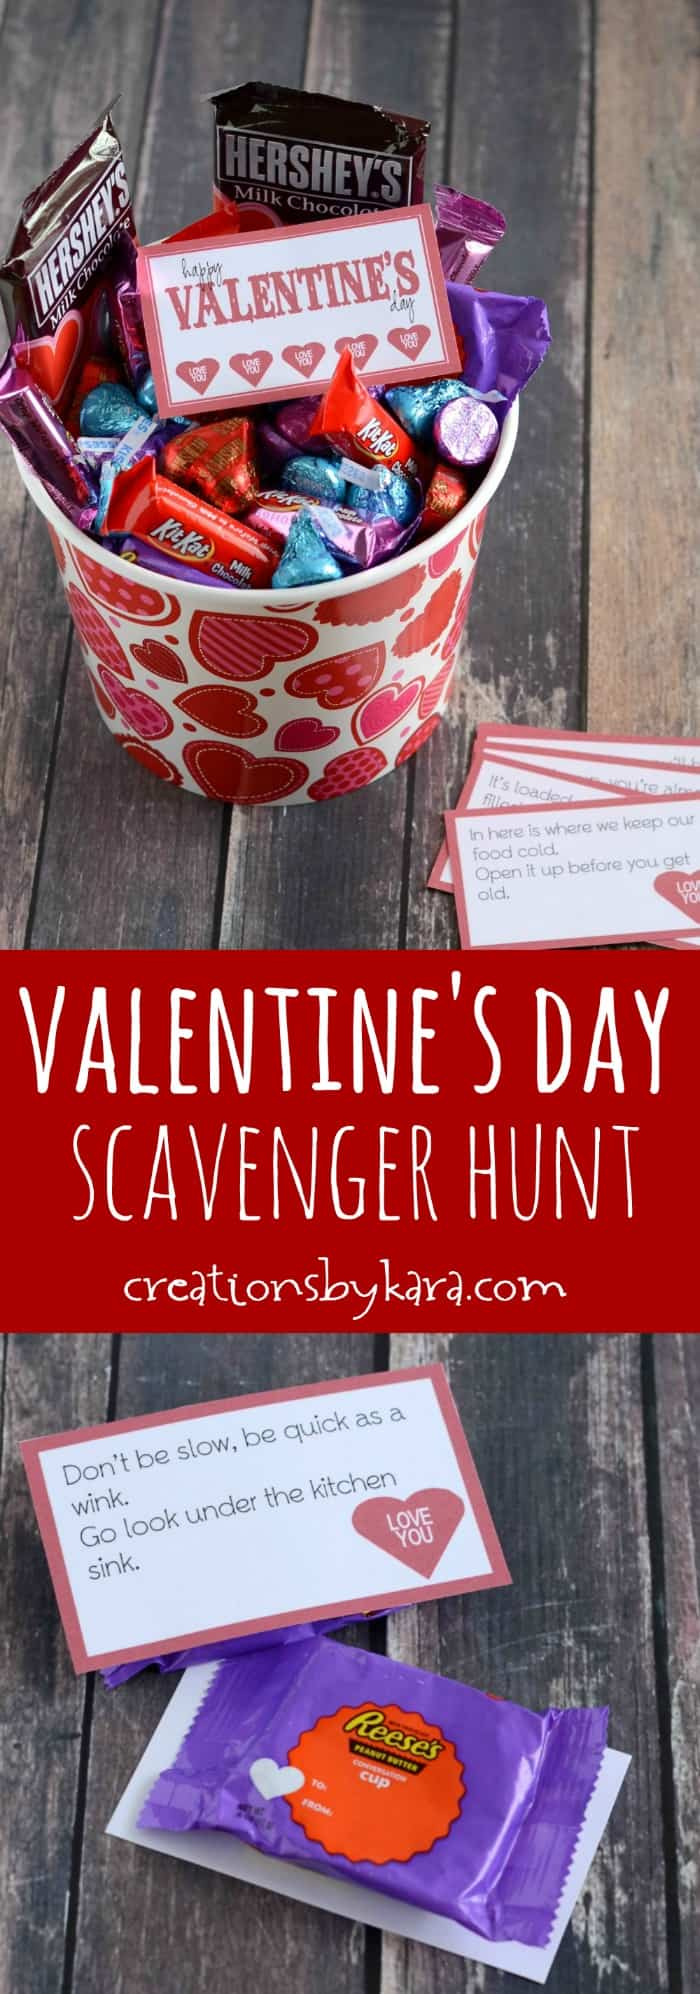 Valentines Day Scavenger Hunt with free printable clues. So fun for the kids!